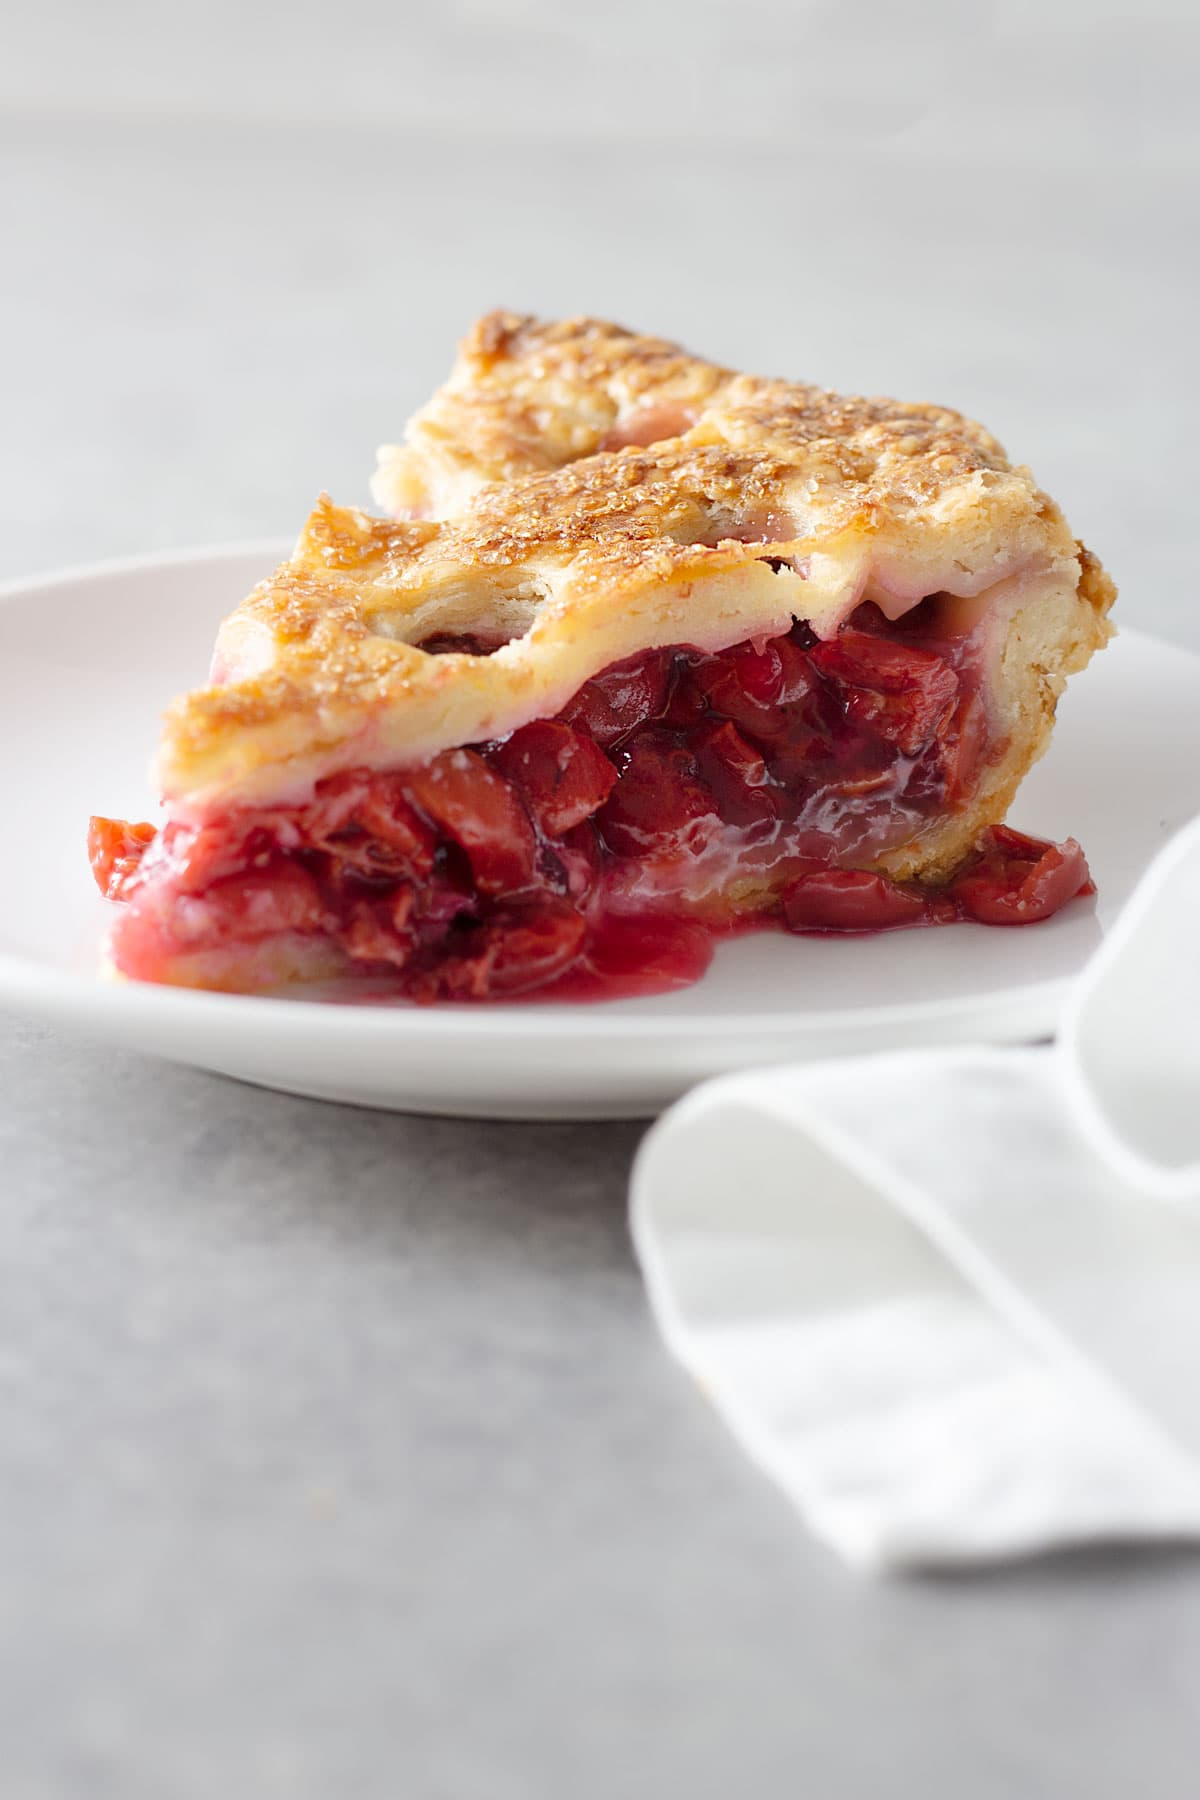 Closeup of a slice of Sour Cherry Pie on a white plate on a light grey surface.